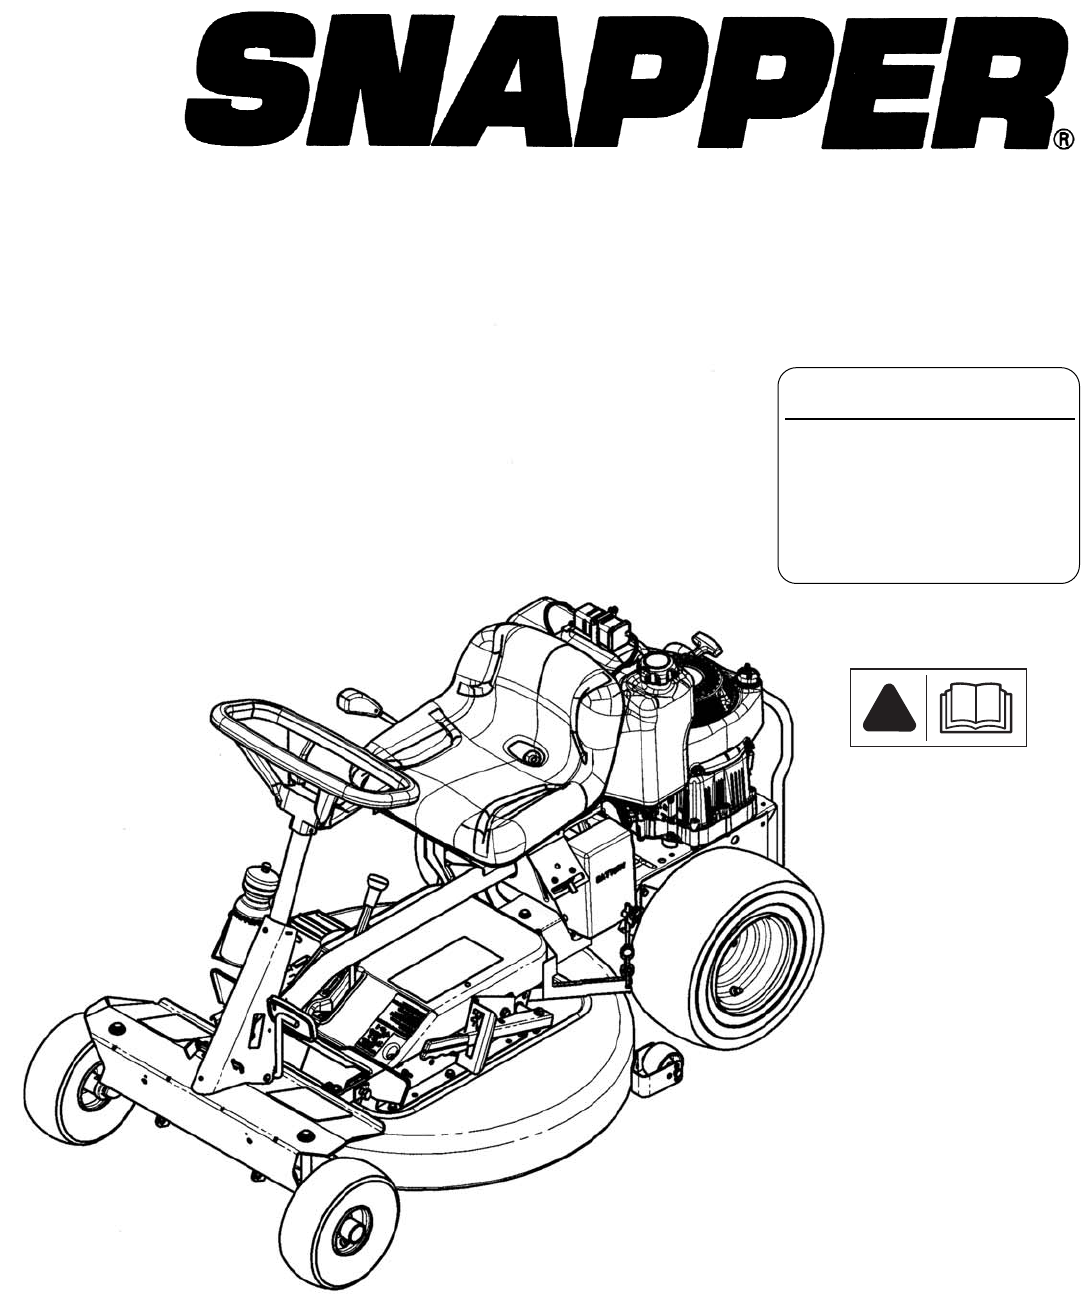 Snapper Lawn Mower User Guide